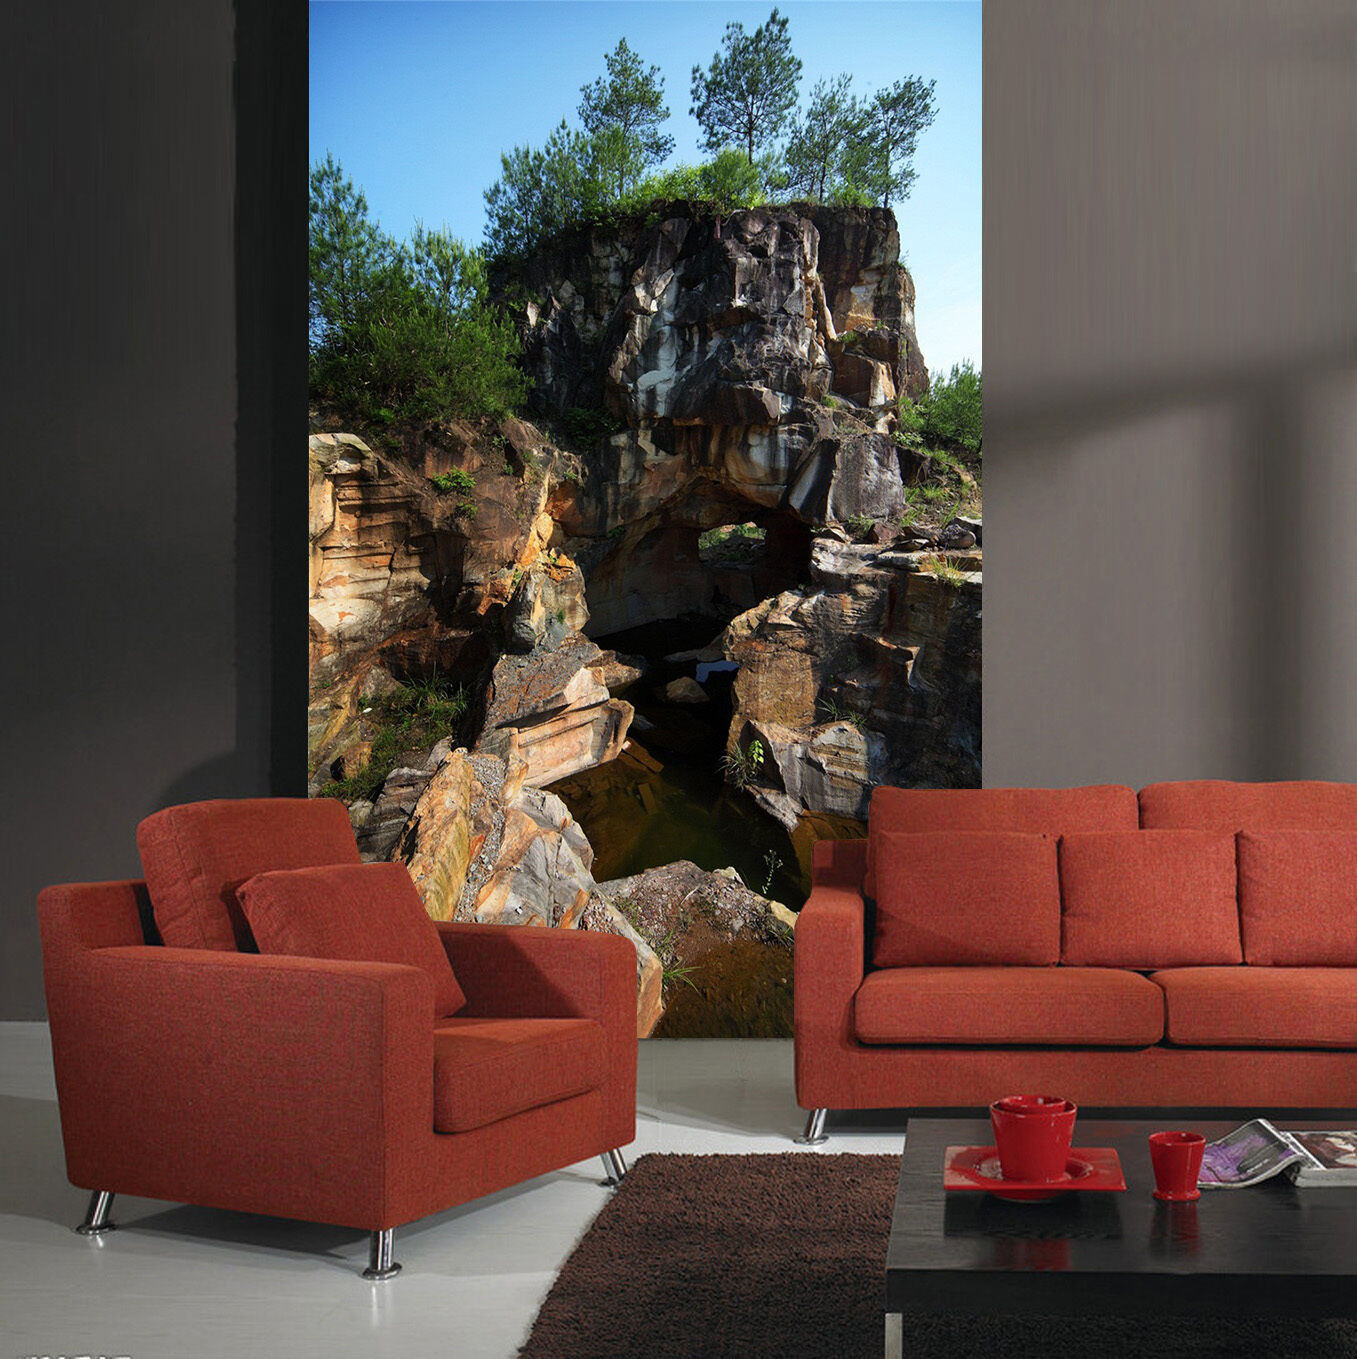 3D Stone Mountains 624 WallPaper Murals Wall Print Decal Wall Deco AJ WALLPAPER